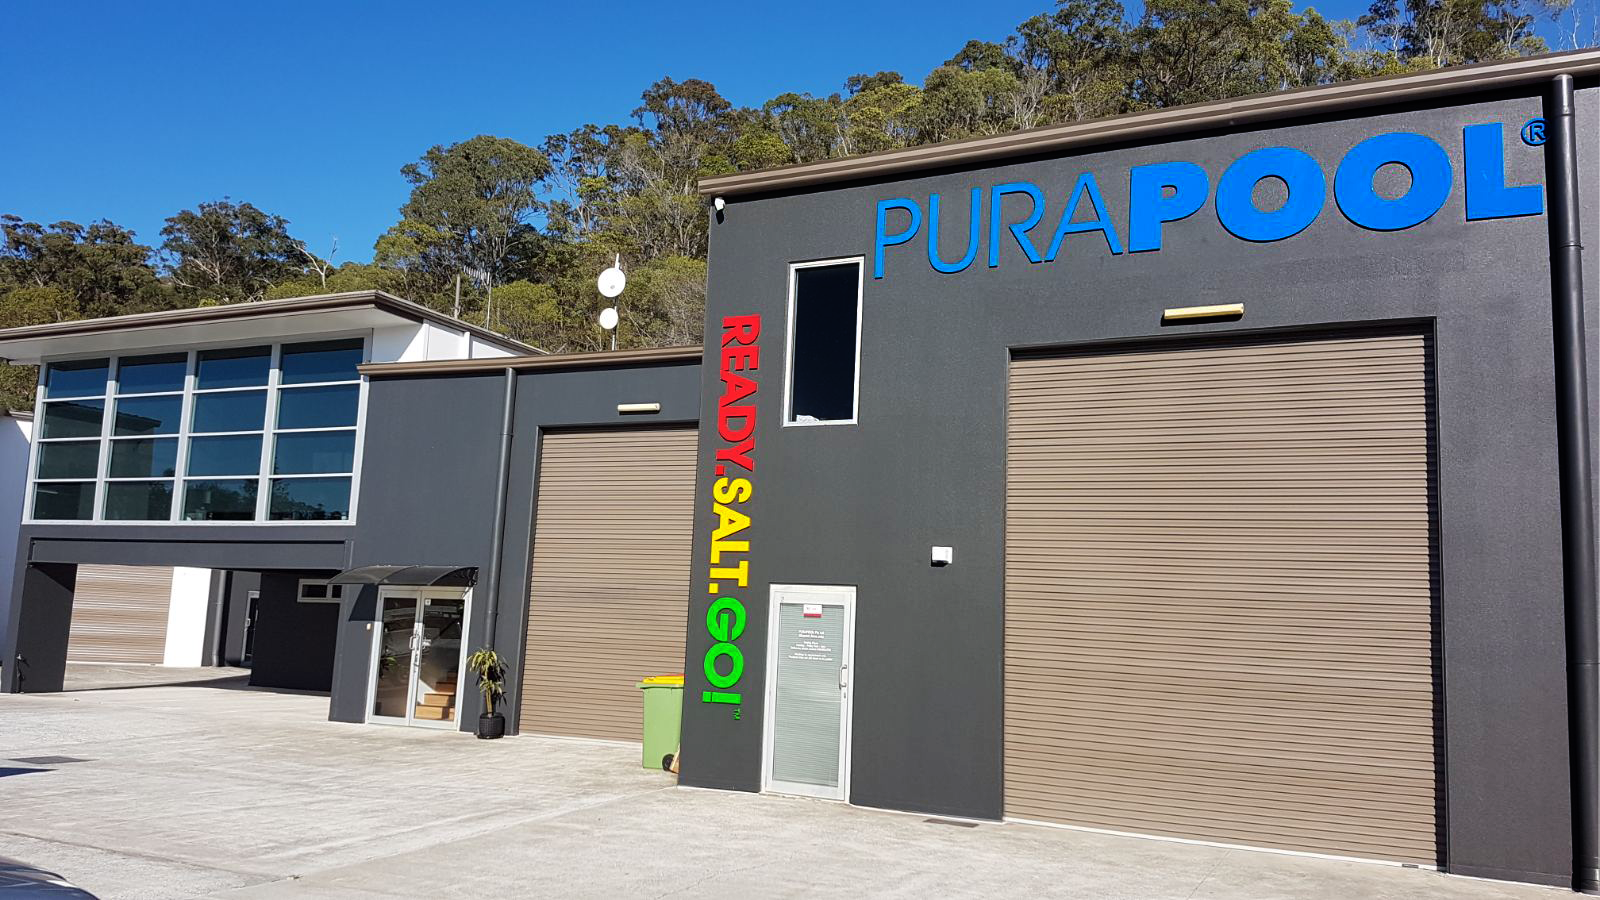 Purapool Manufacturing Factory located at 2/76 Township Dr, Burleigh Heads QLD 4219